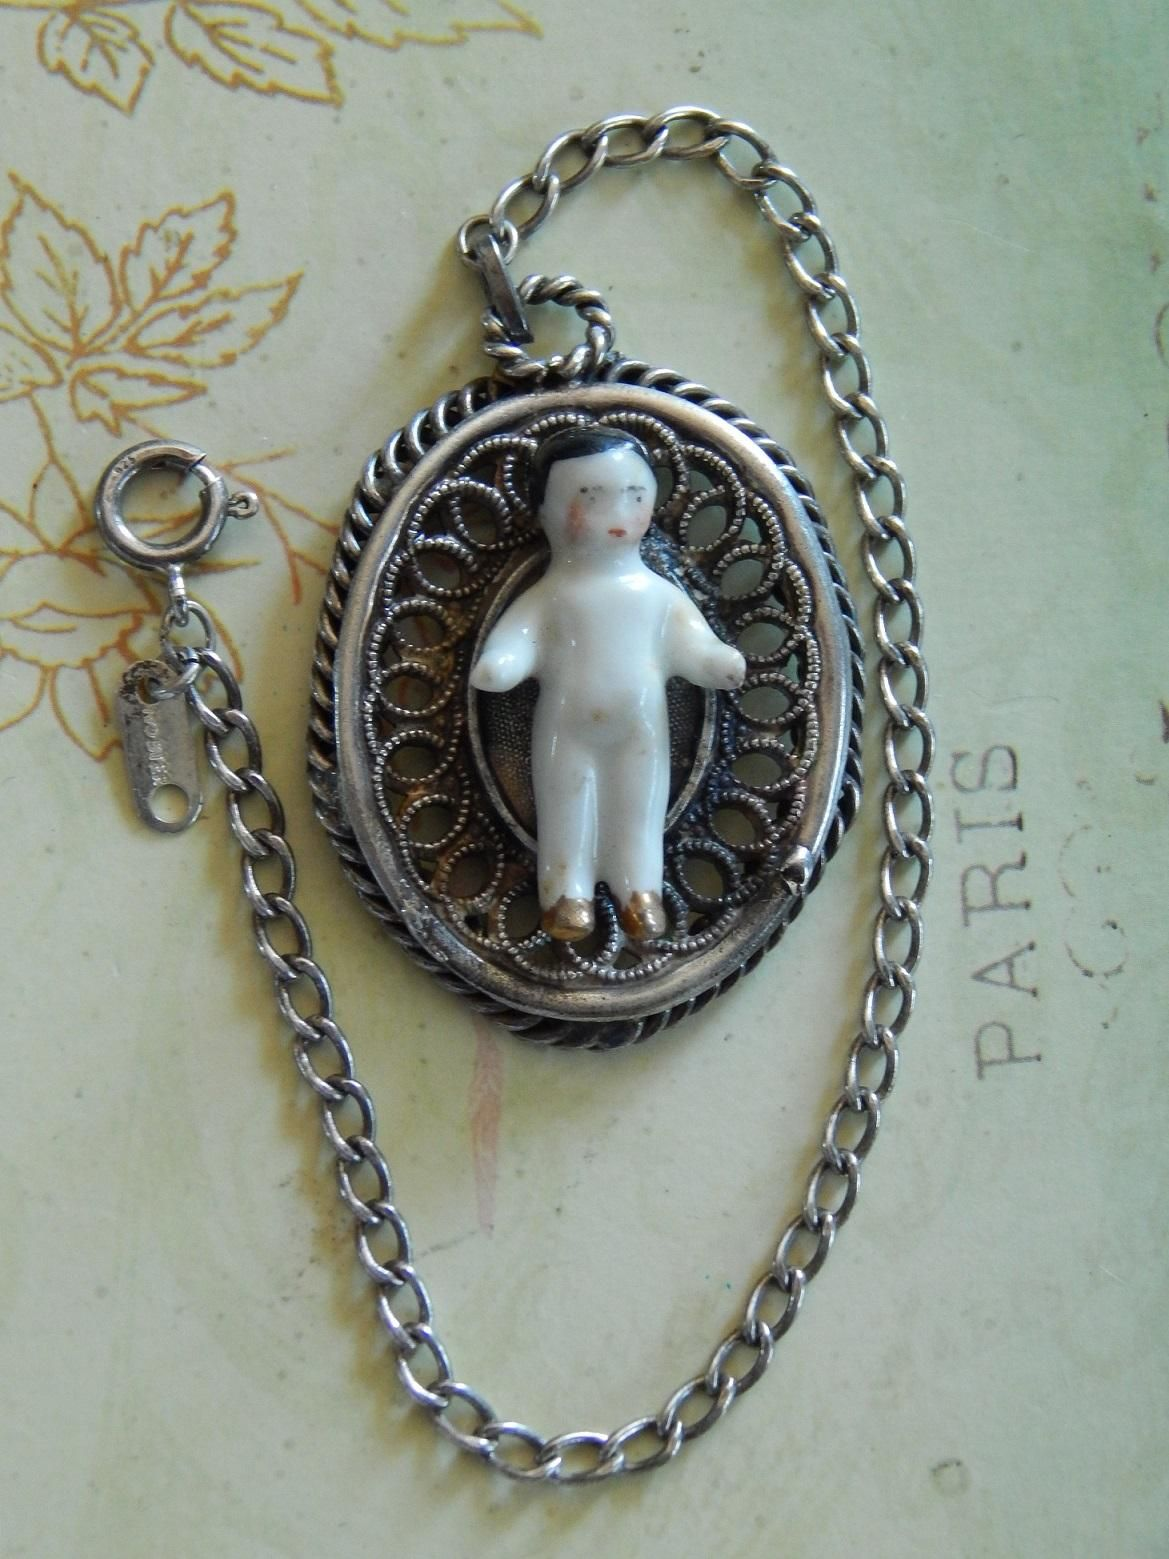 Sterling silver frozen Charlotte doll chatelaine. Now available in my Ruby Lane store: Kim's Doll Gems